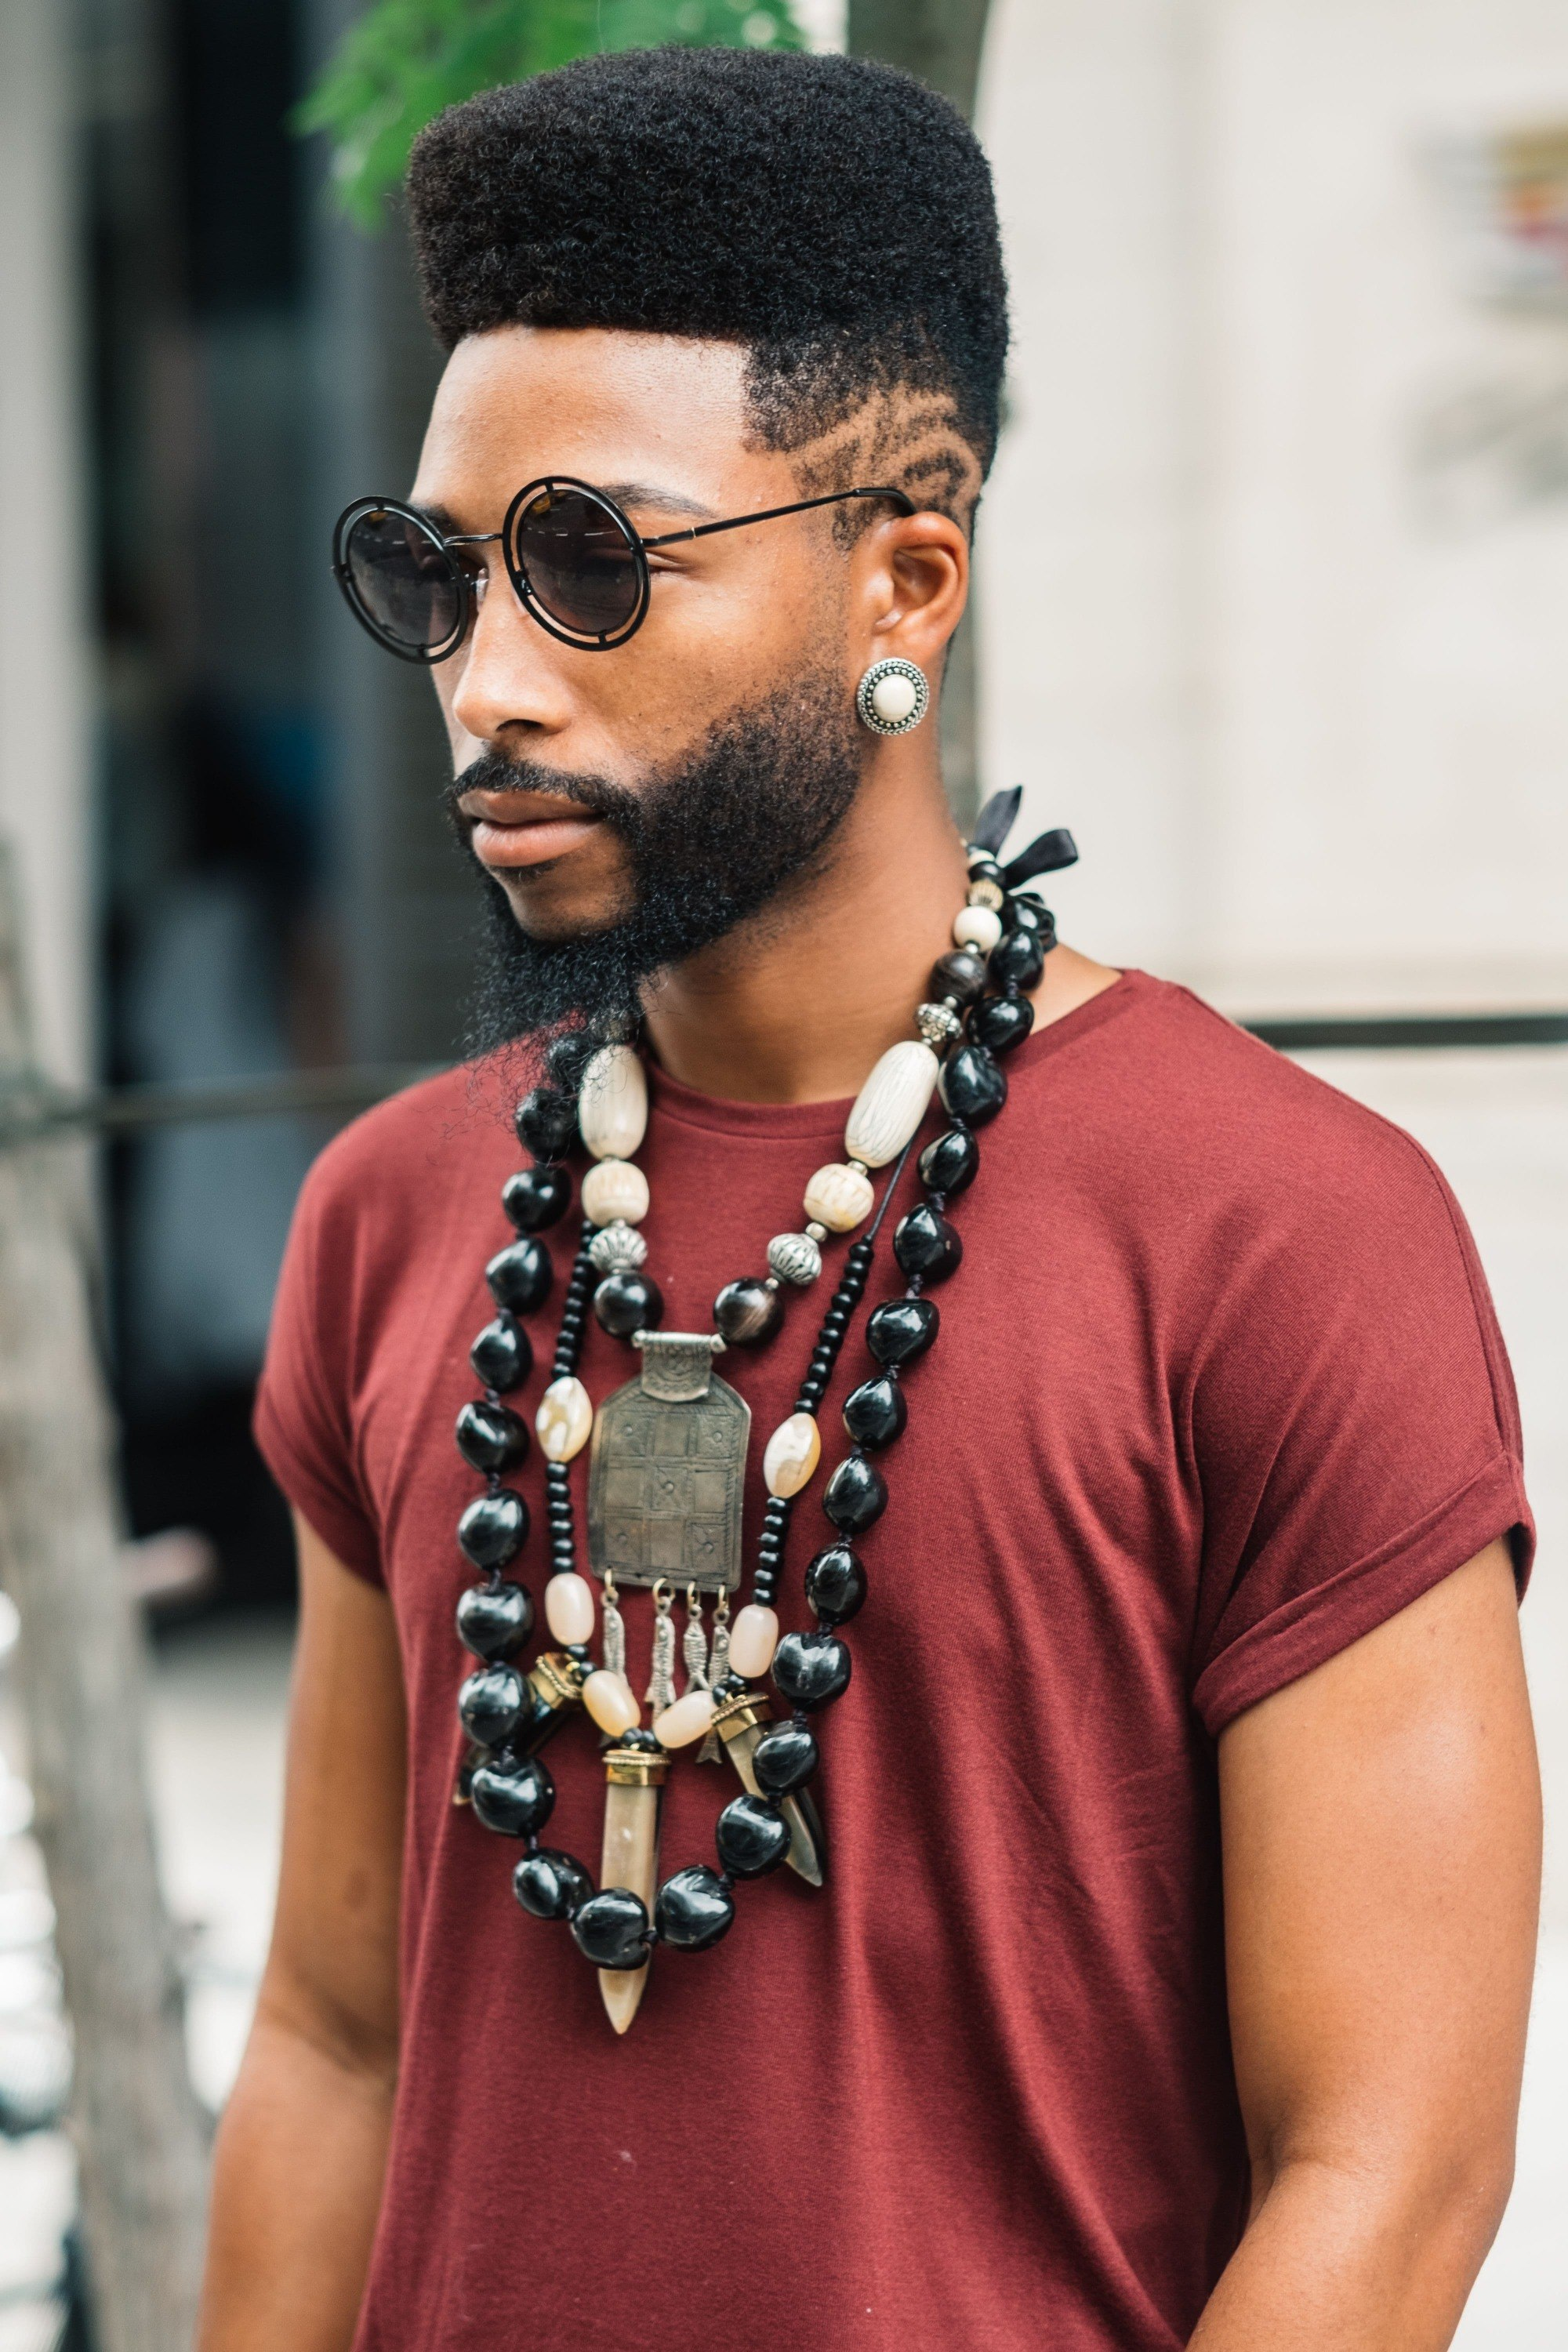 Vintage hairstyles for men: Street style shot of a man with an afro high top with a low fade hairstyle, wearing a red top and necklaces